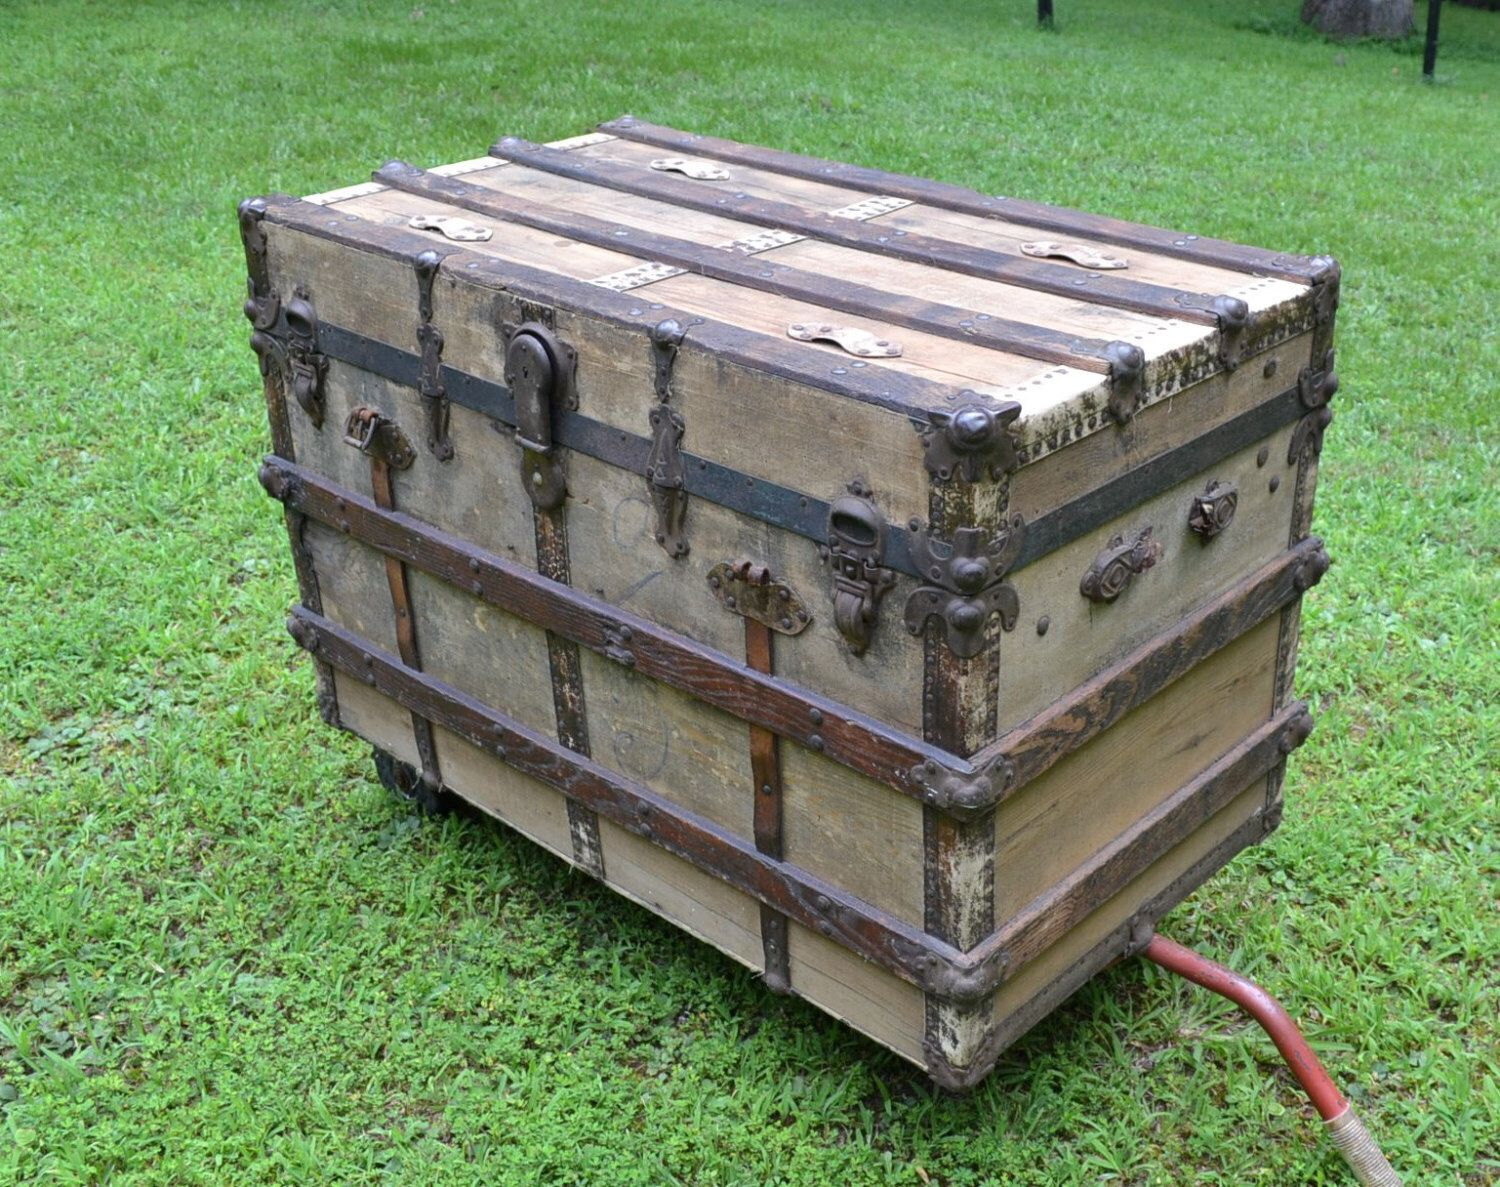 Uncategorized Vintage Wood Trunk vintage antique wooden trunk whittle and bag co knoxville tennessee coffee table rustic storage panchosporch